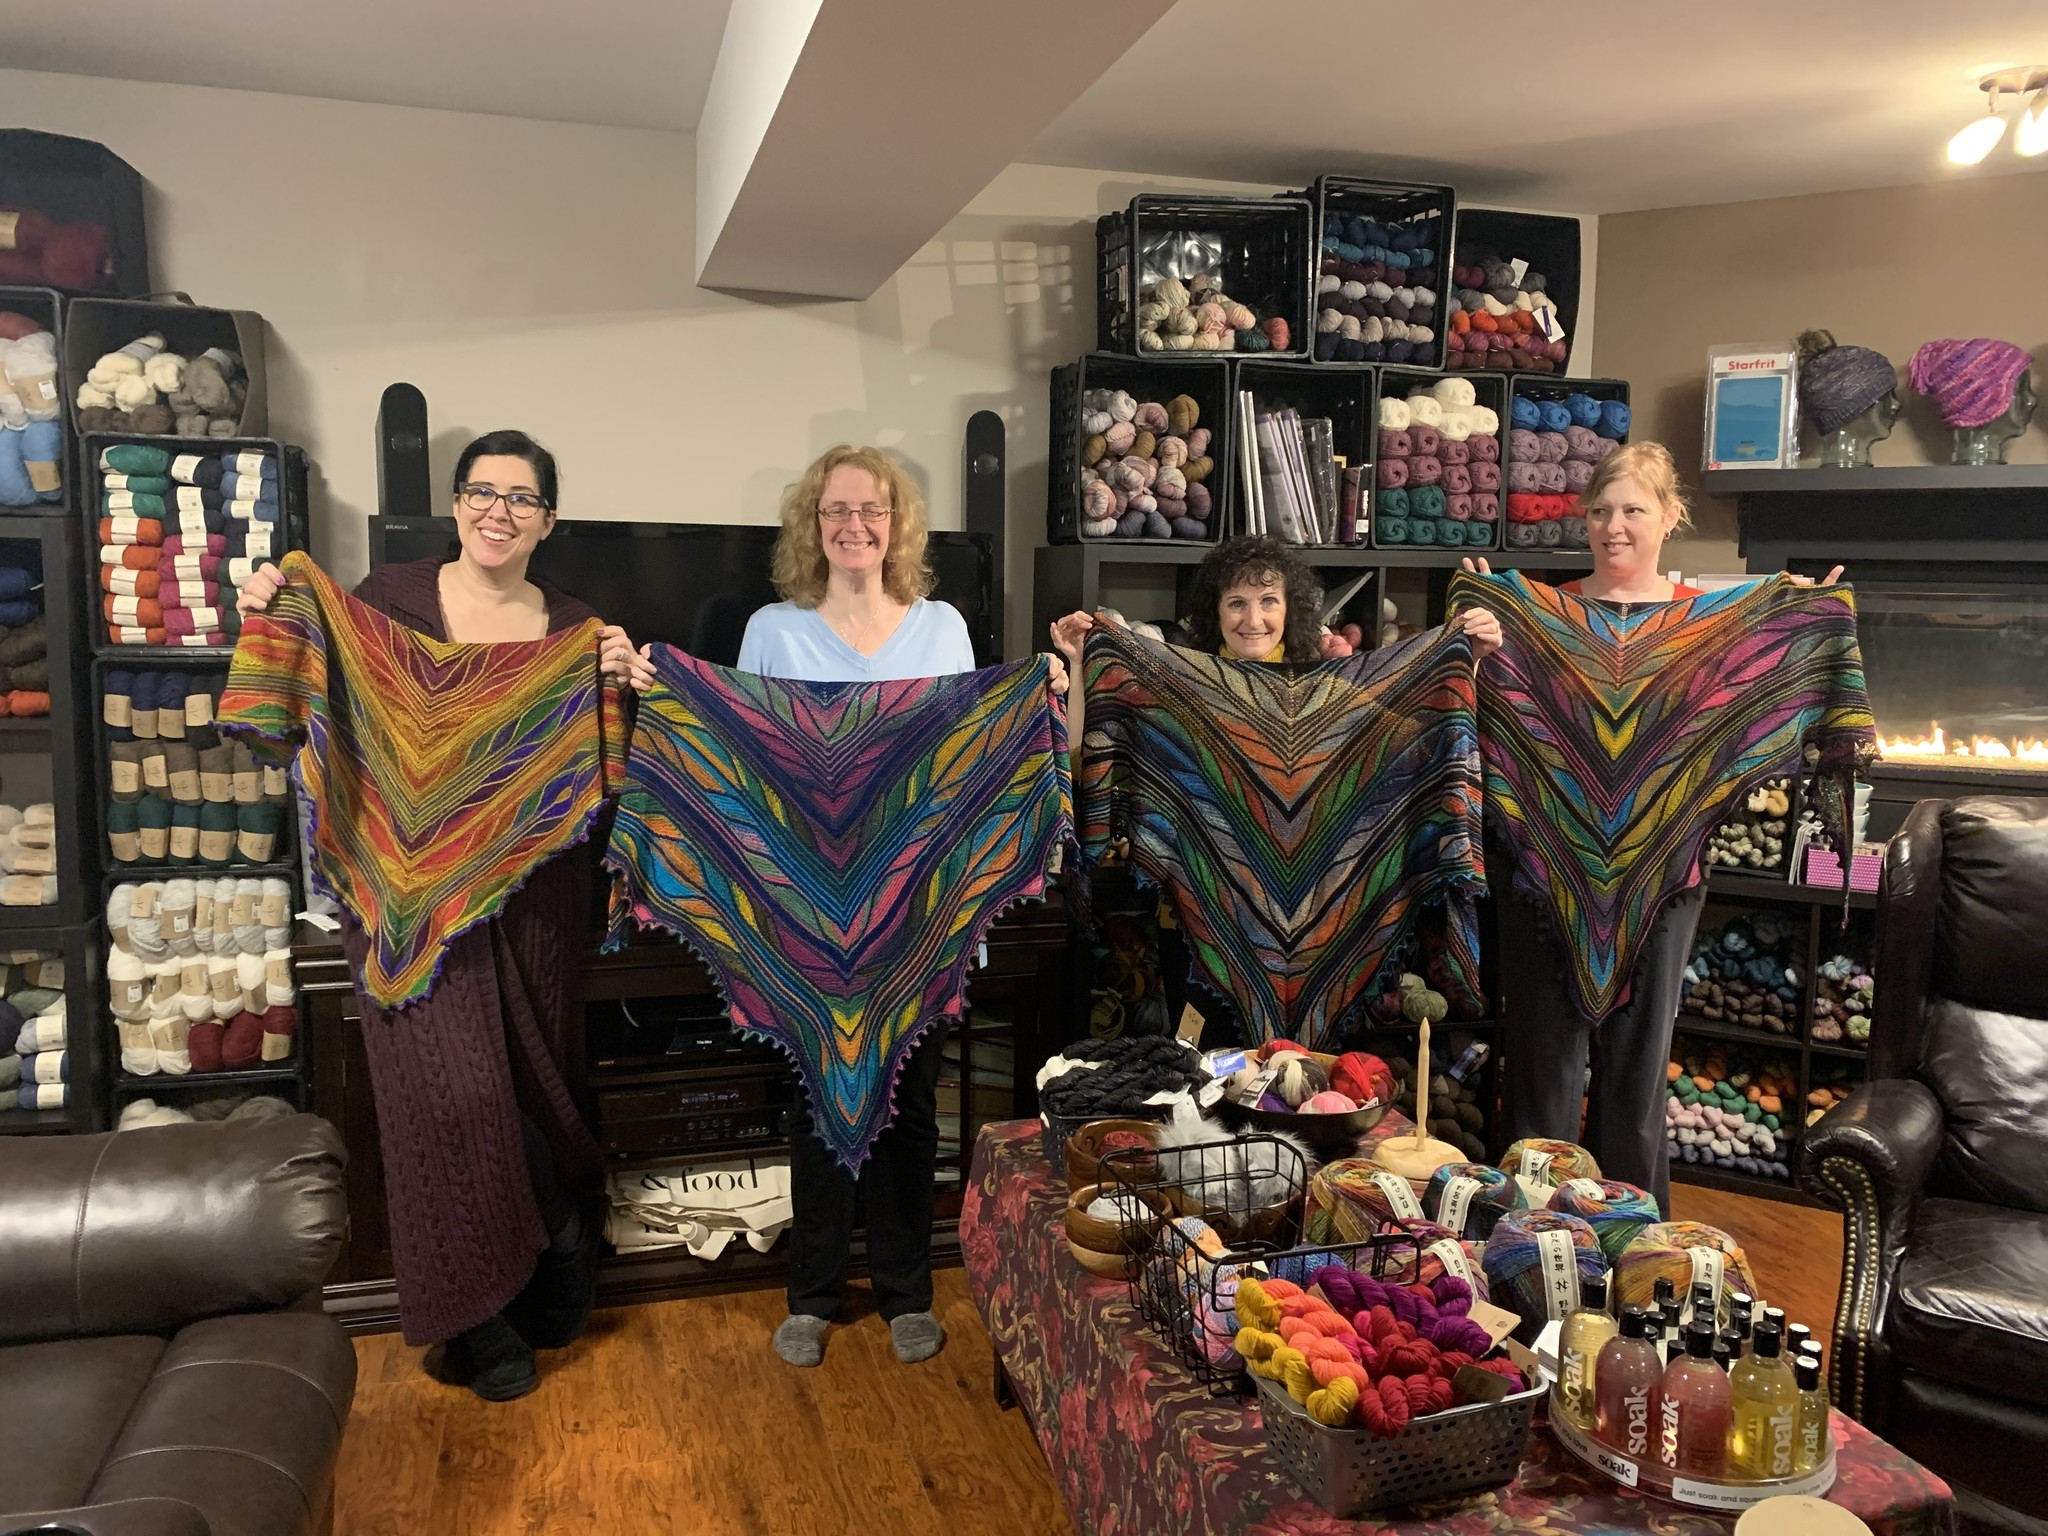 Friday, February 7, 2020, Issue 133: What is on your needles?